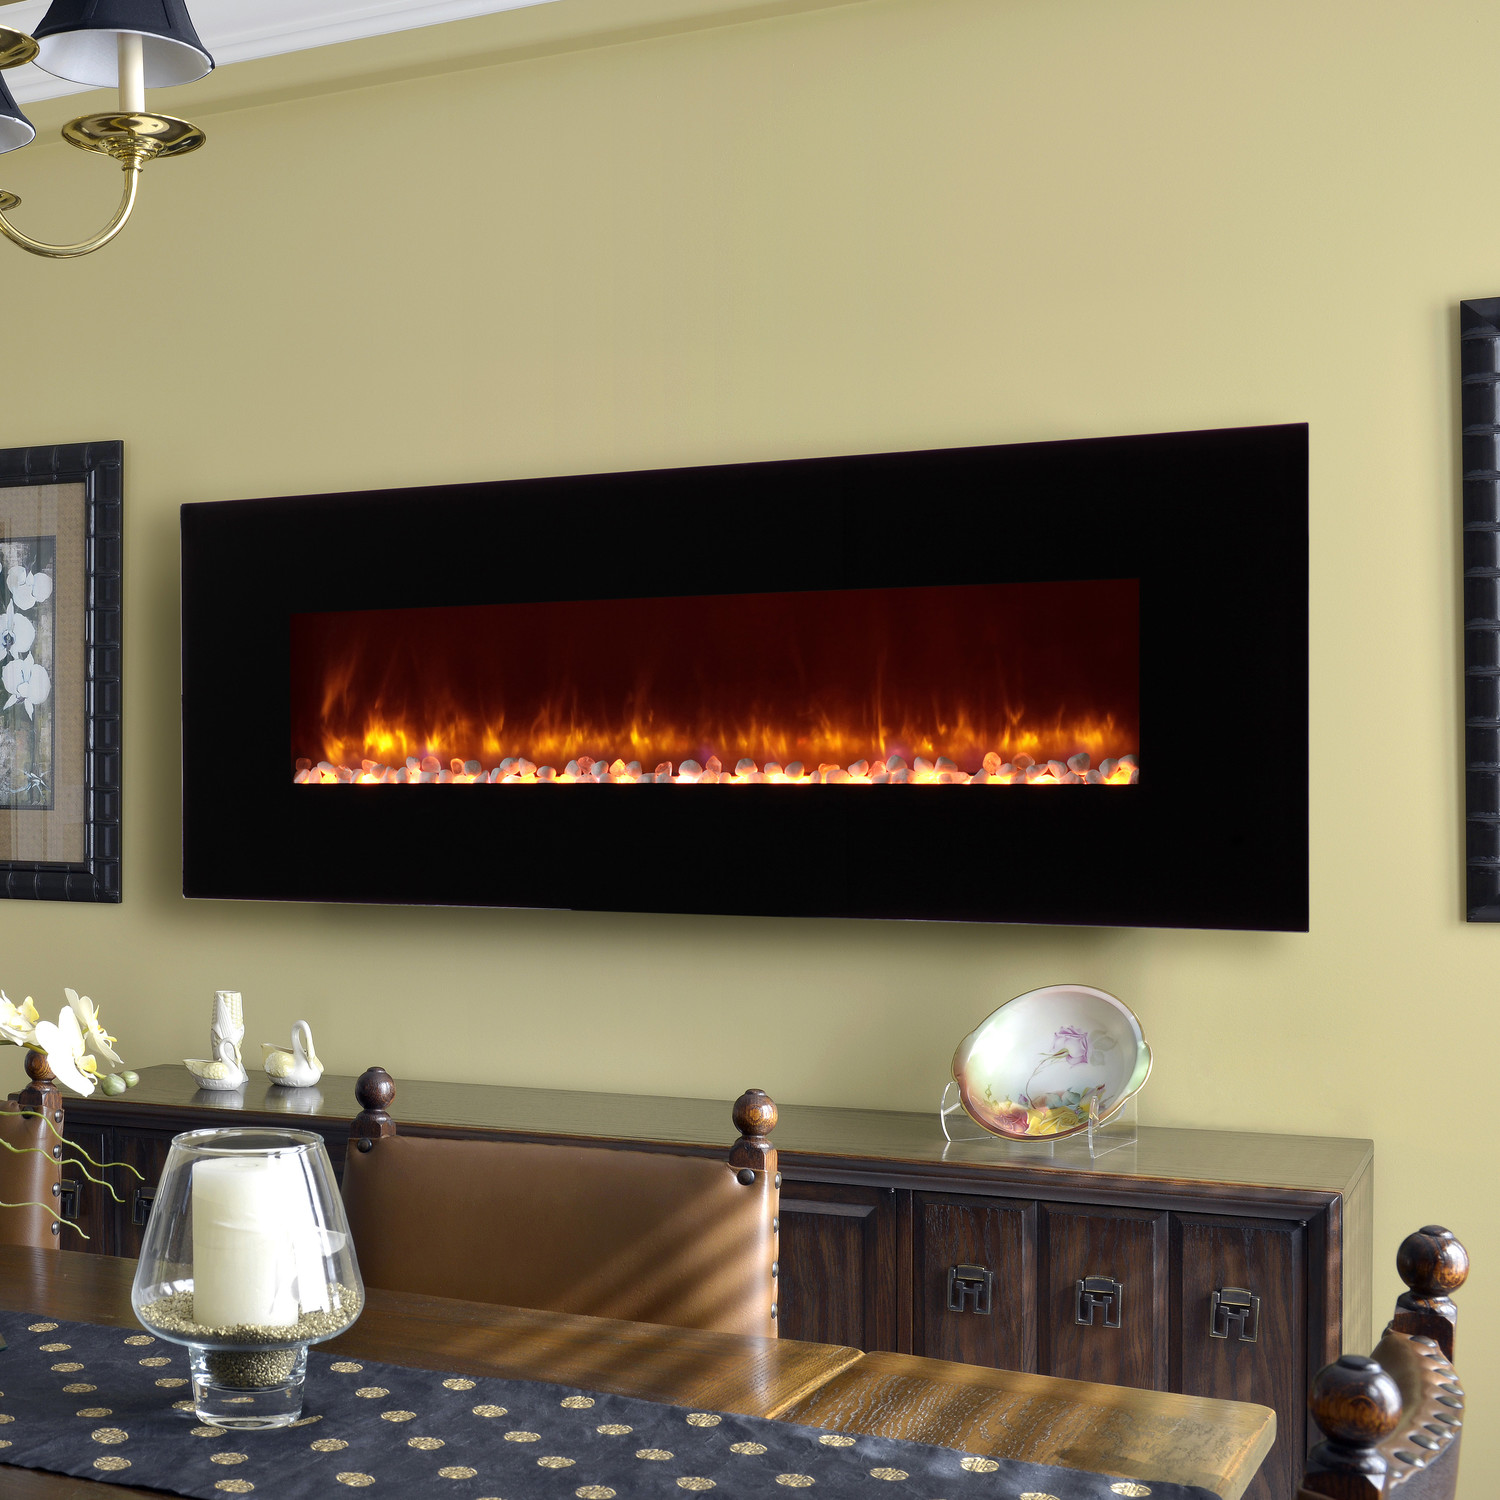 Wall Mount Fireplace Heaters Clevr 750 1500w 48